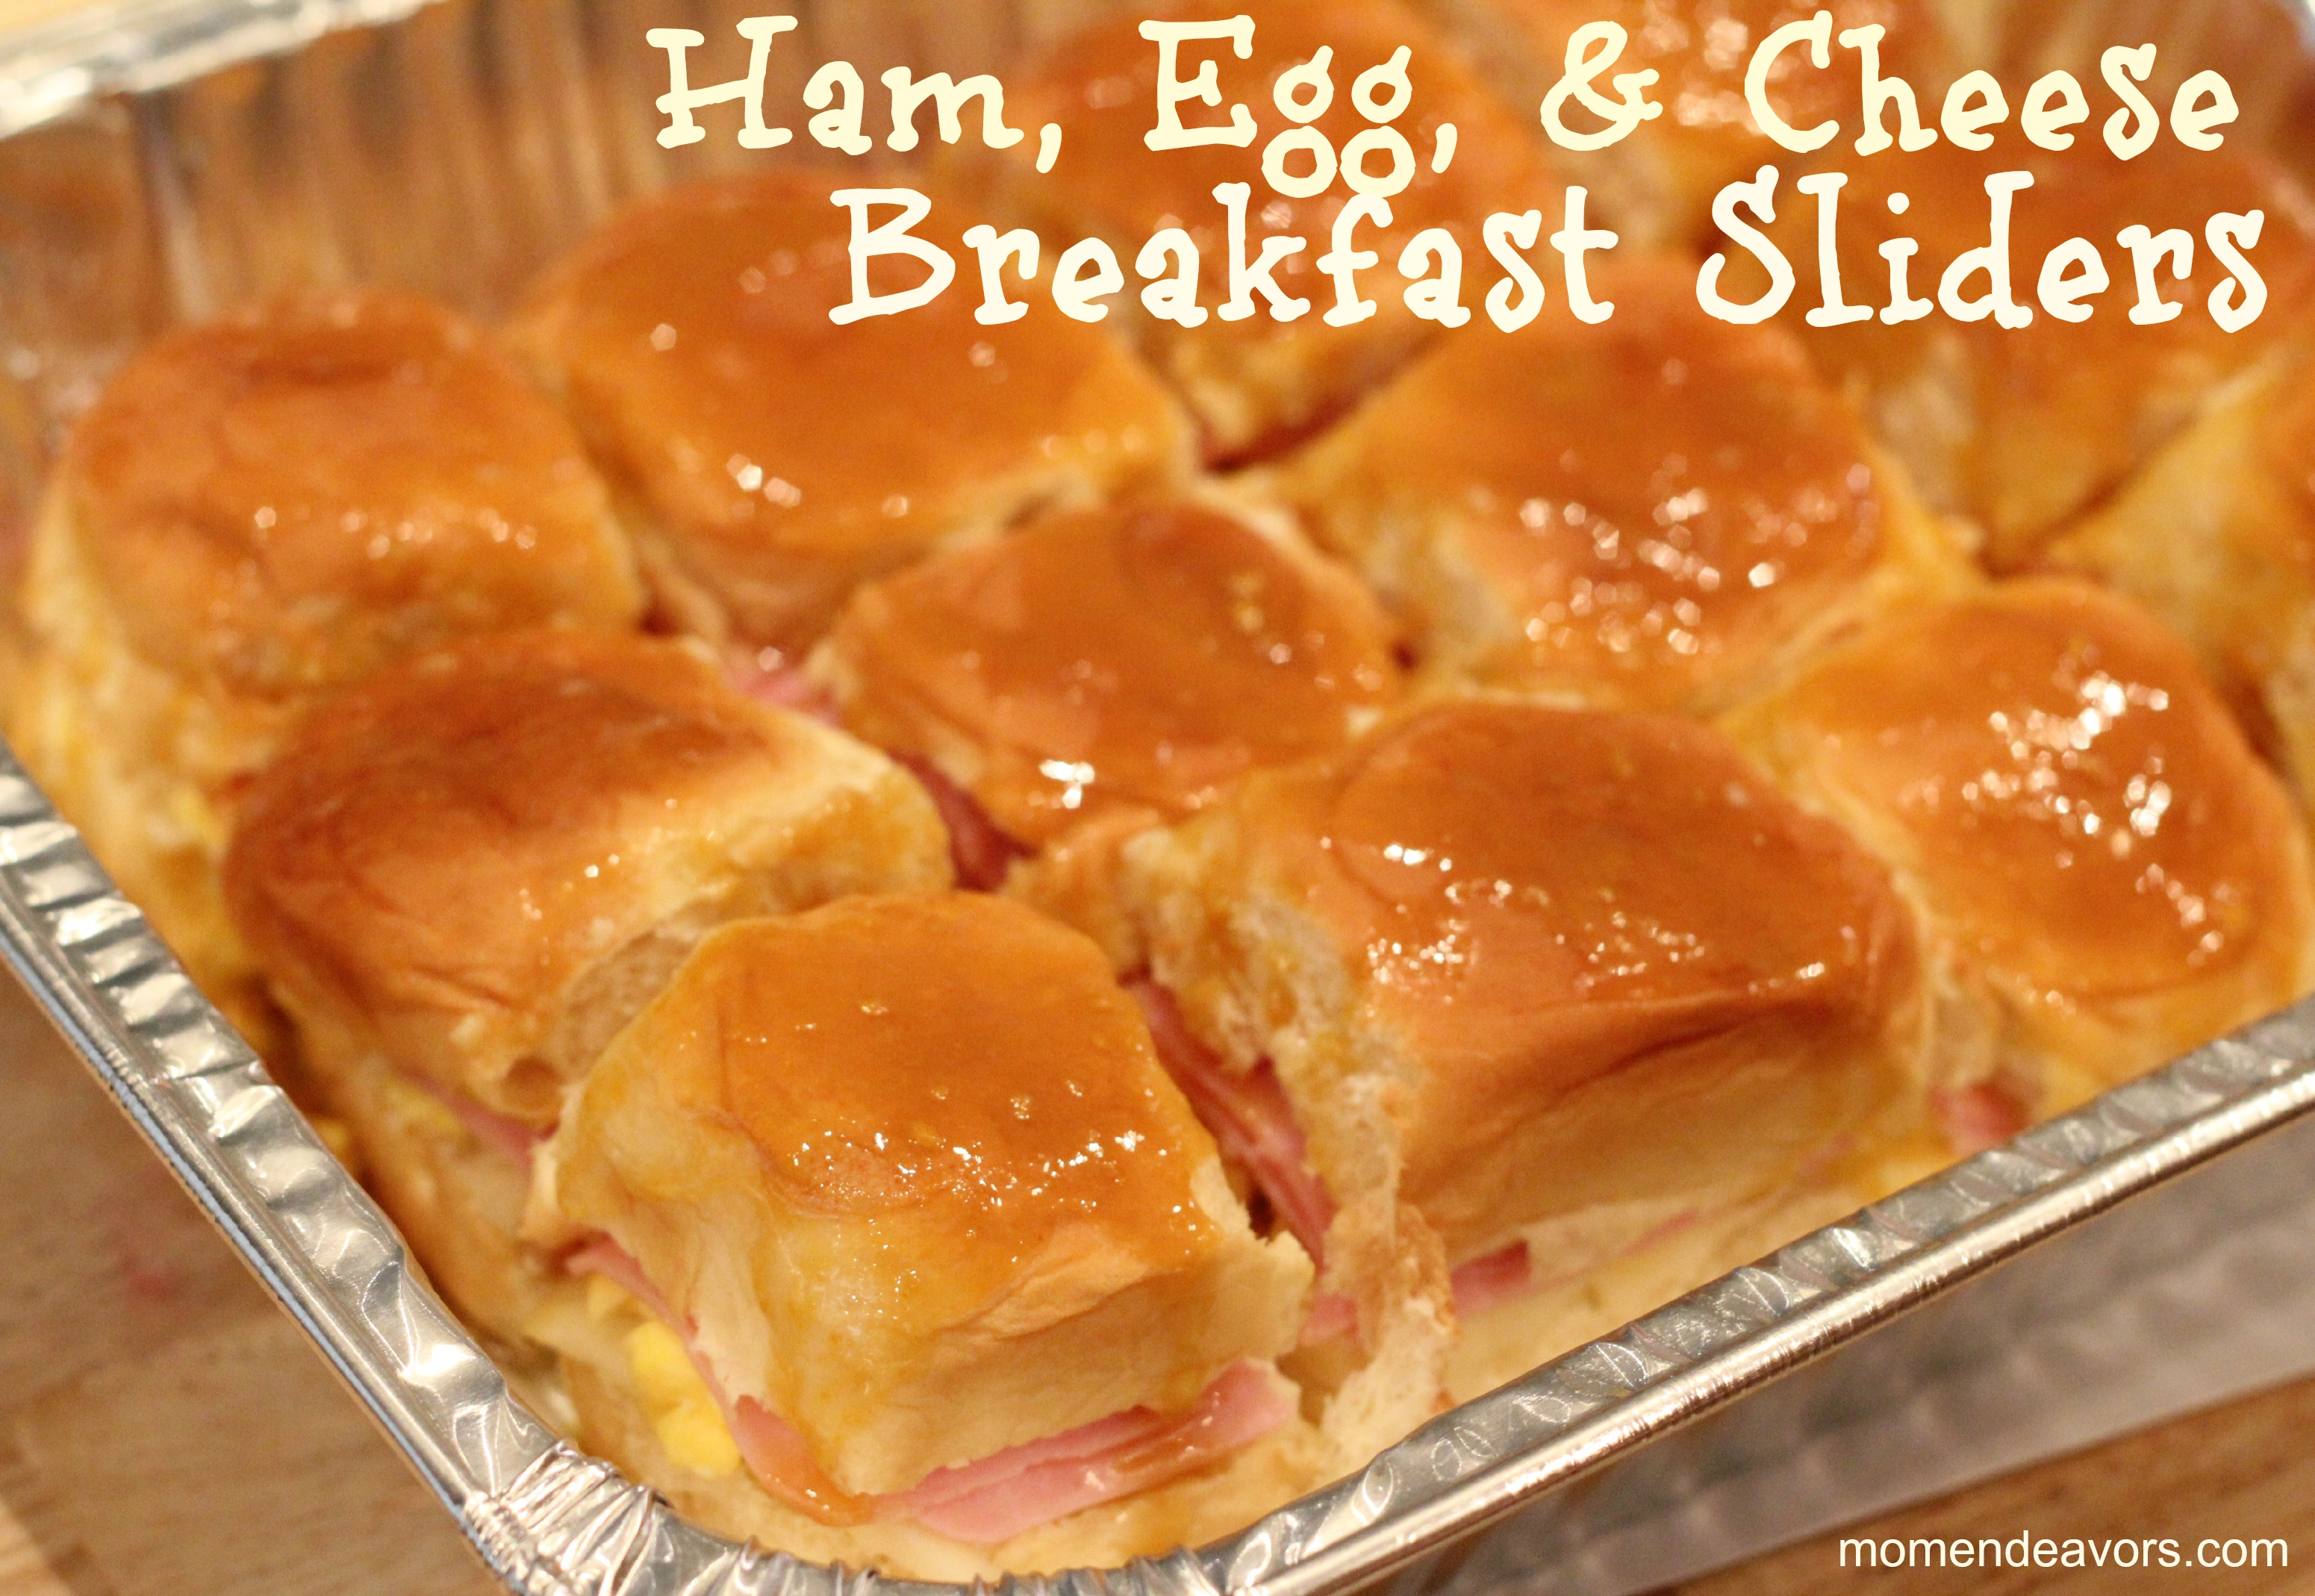 What to do with the leftover christmas ham 10 recipe ideas using ham or forumfinder Choice Image